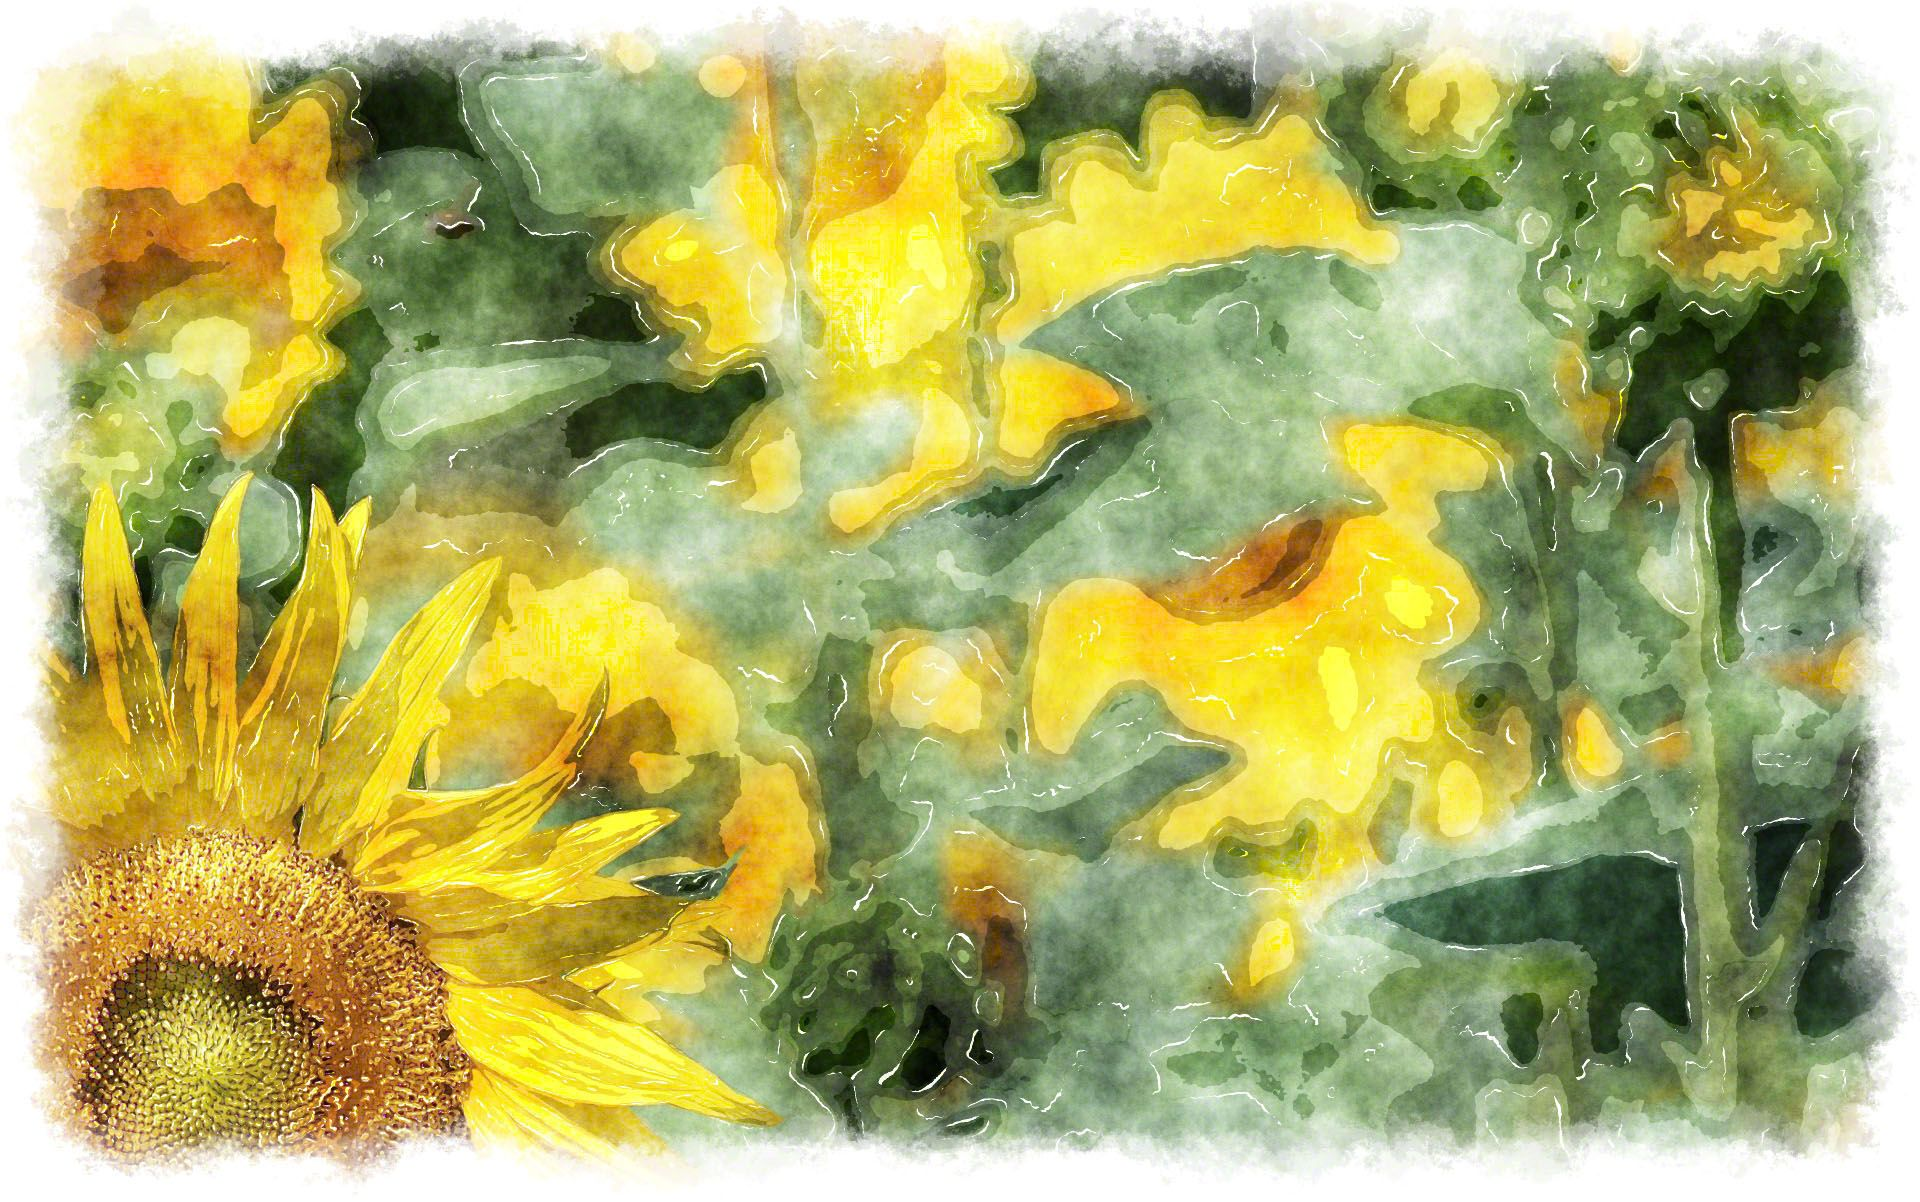 Sunflower Watercolor Painting A Beautiful Wallpaper Made With Art Applied To Photography High Resolution For Your Personal